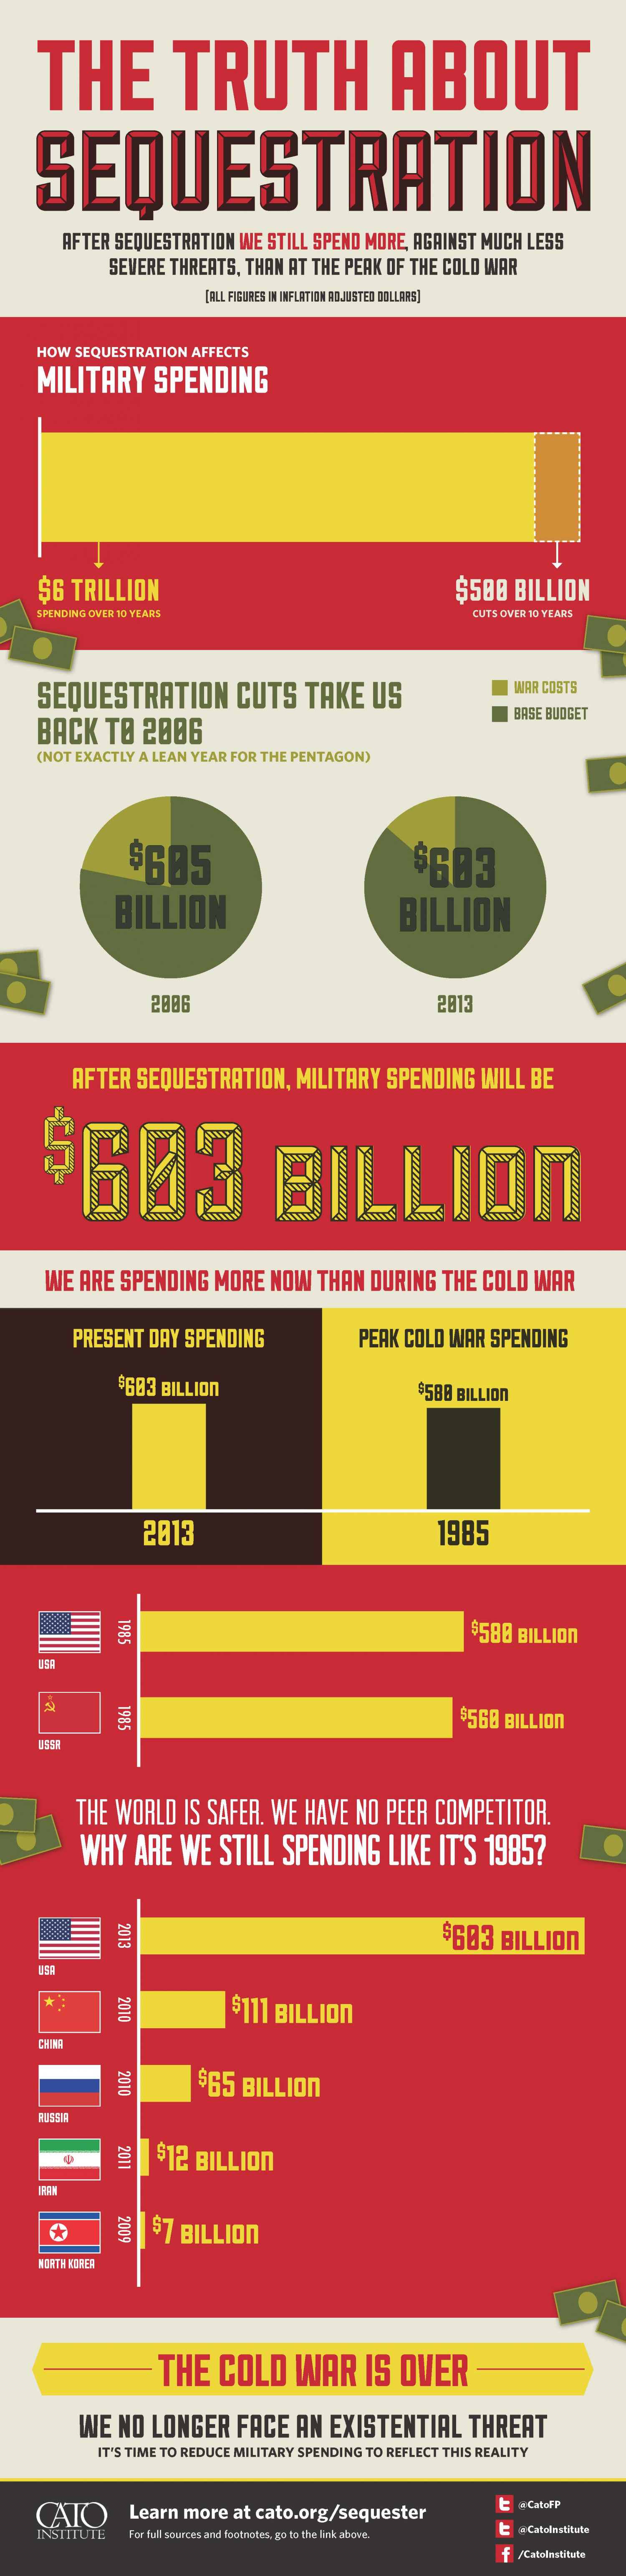 Sequestration Infographic